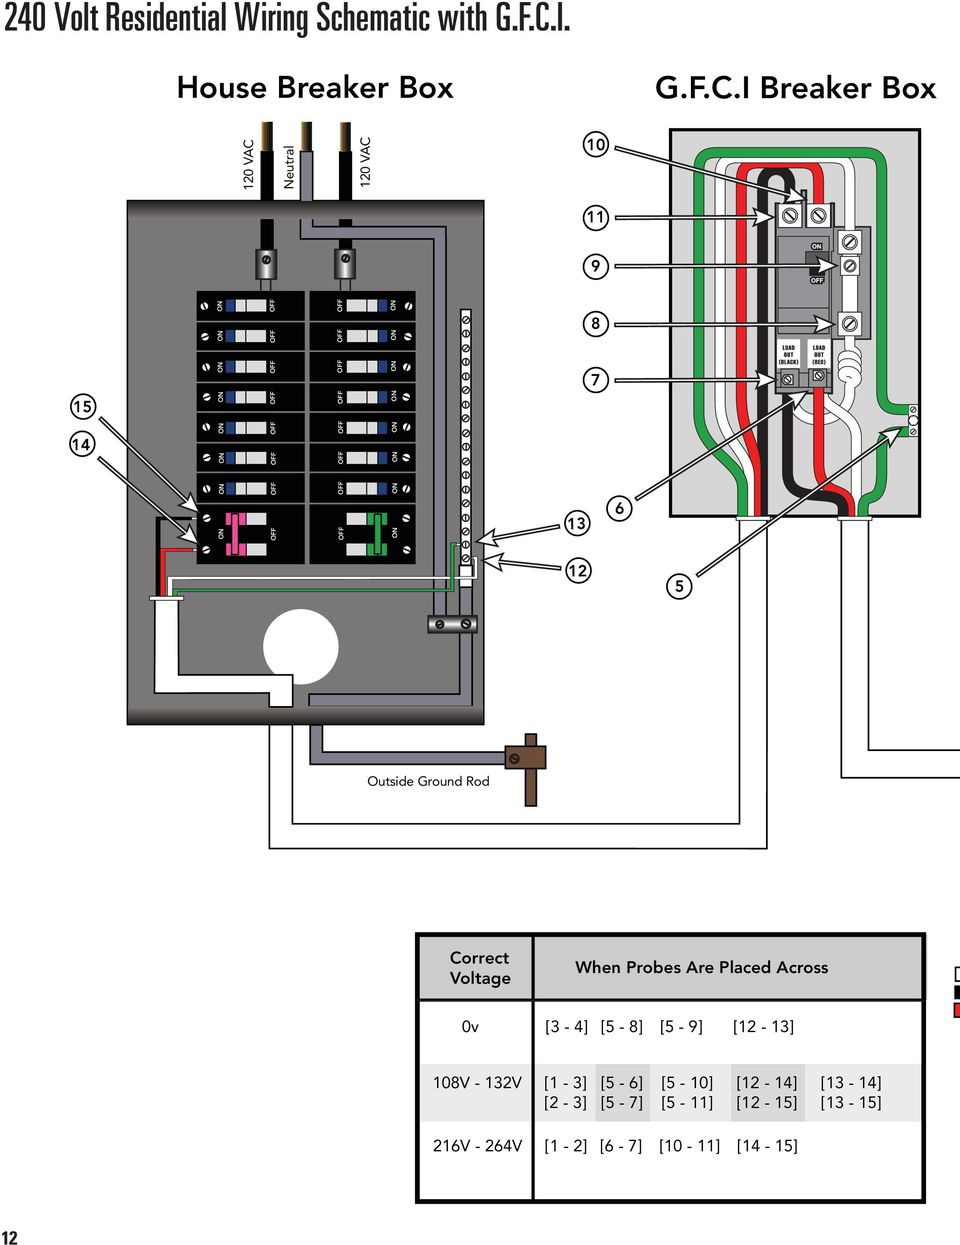 Troubleshooting Service For El Vs Systems 60 Hz Pdf 240 To Main Box Wiring Diagram I Breaker 120 Vac Neutral 10 11 9 8 7 15 14 13